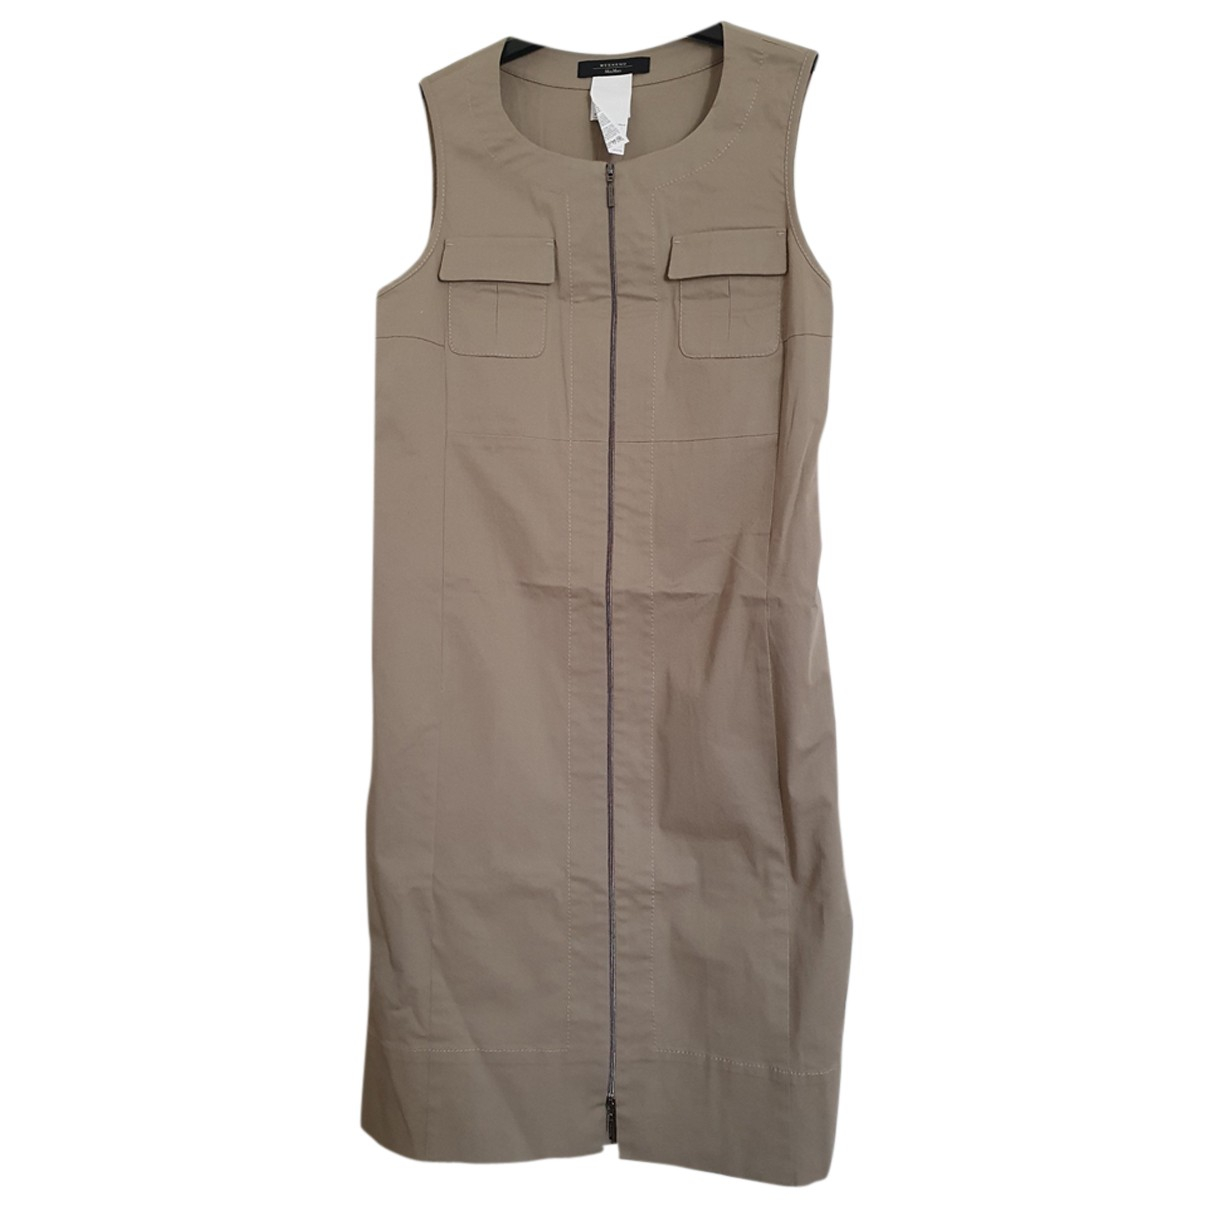 Max Mara Weekend N Khaki Cotton dress for Women 38 FR